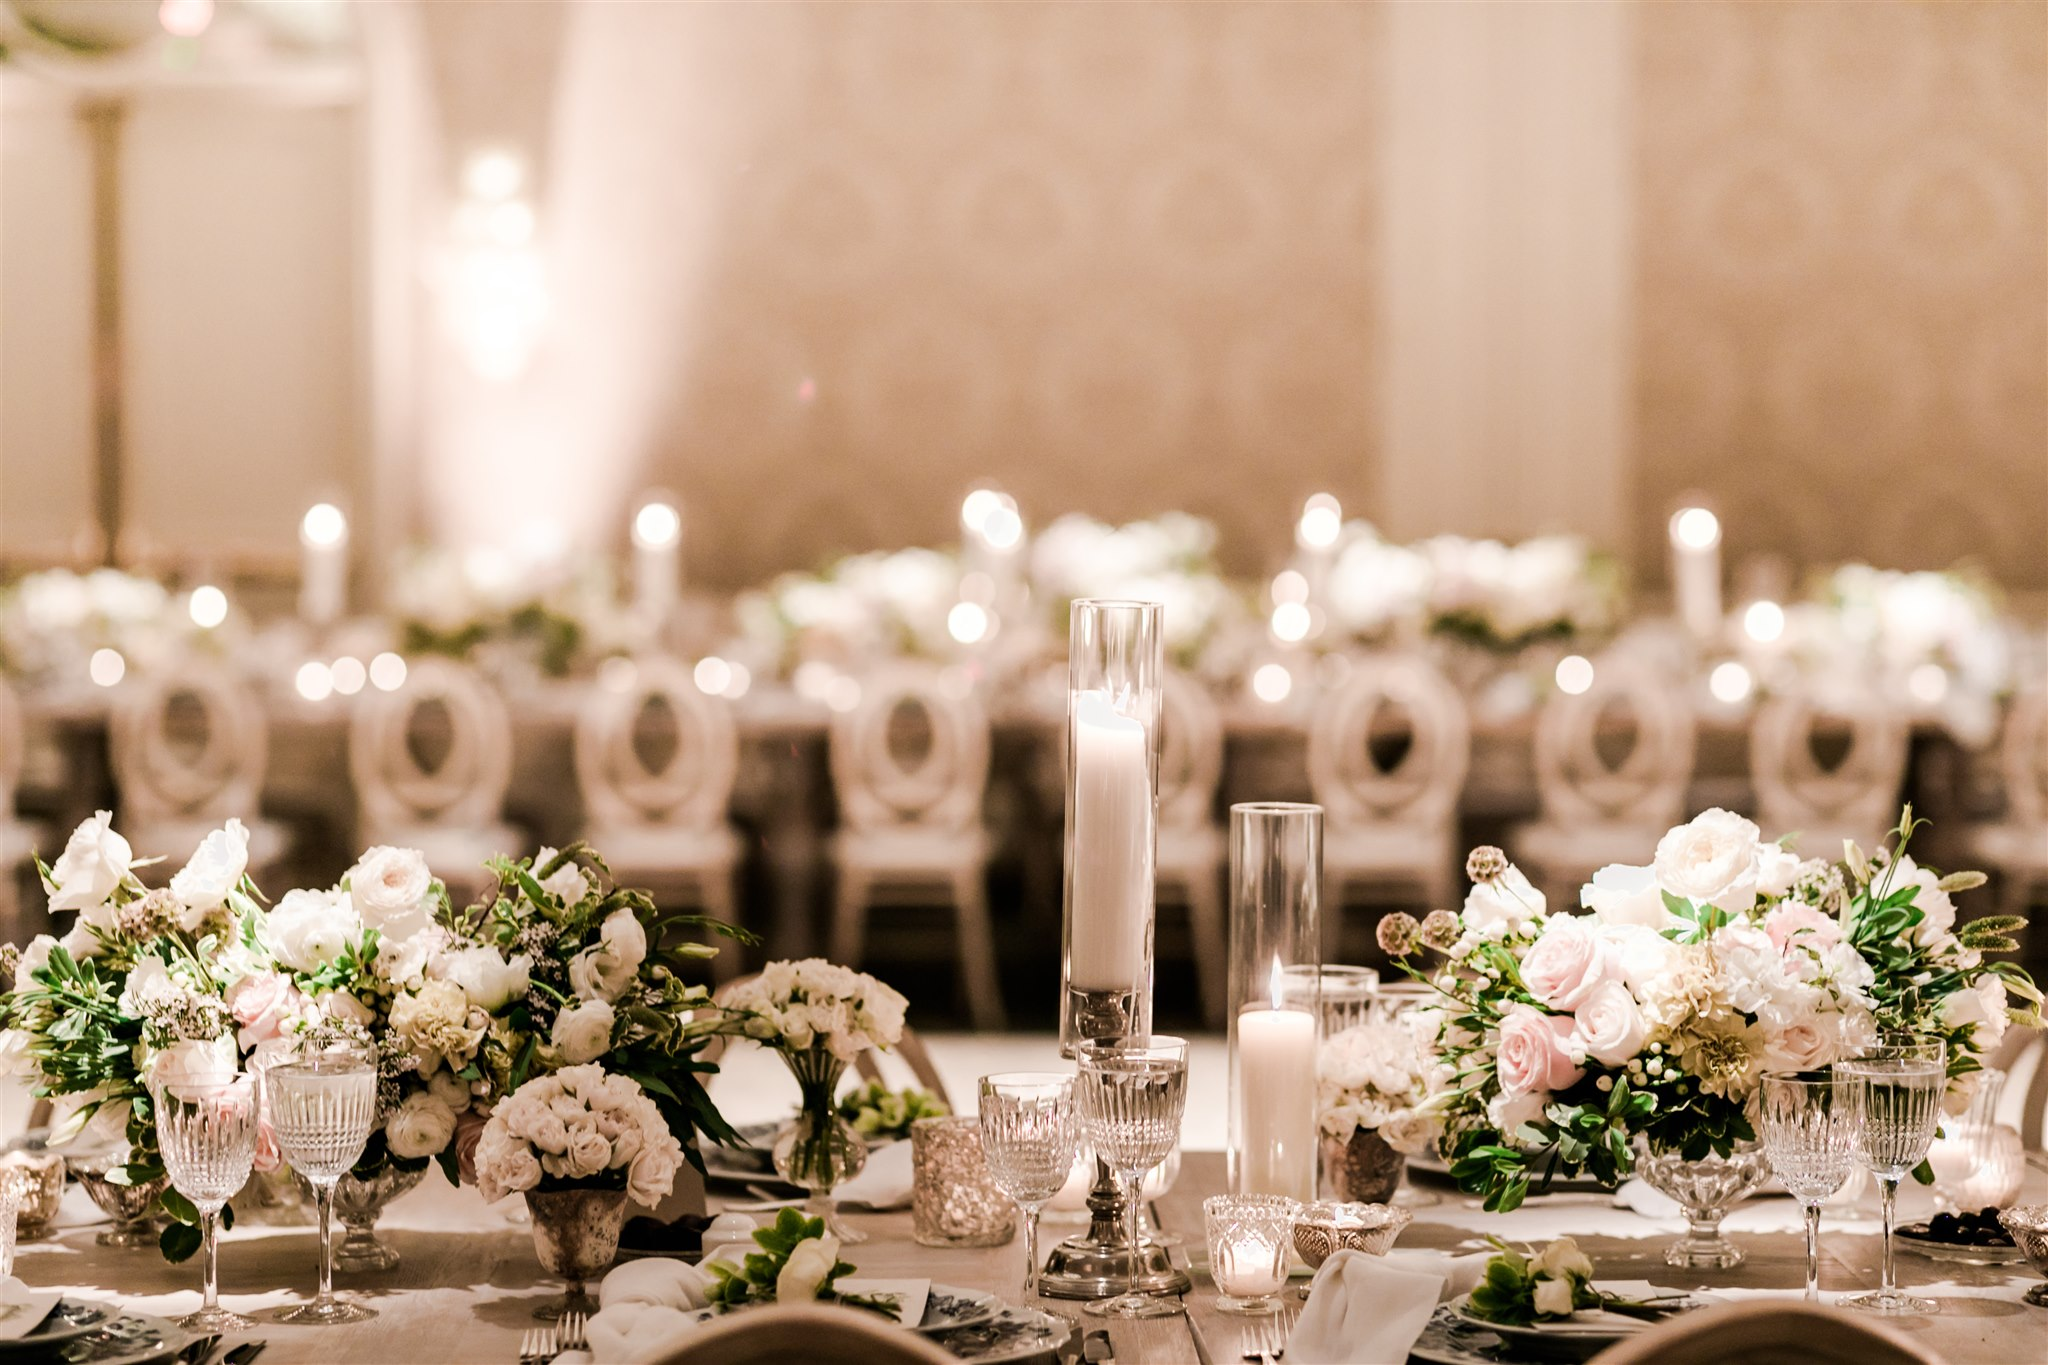 Four Seasons Beverly Hills Wedding-Valorie Darling Photography_ID3A2989.jpg